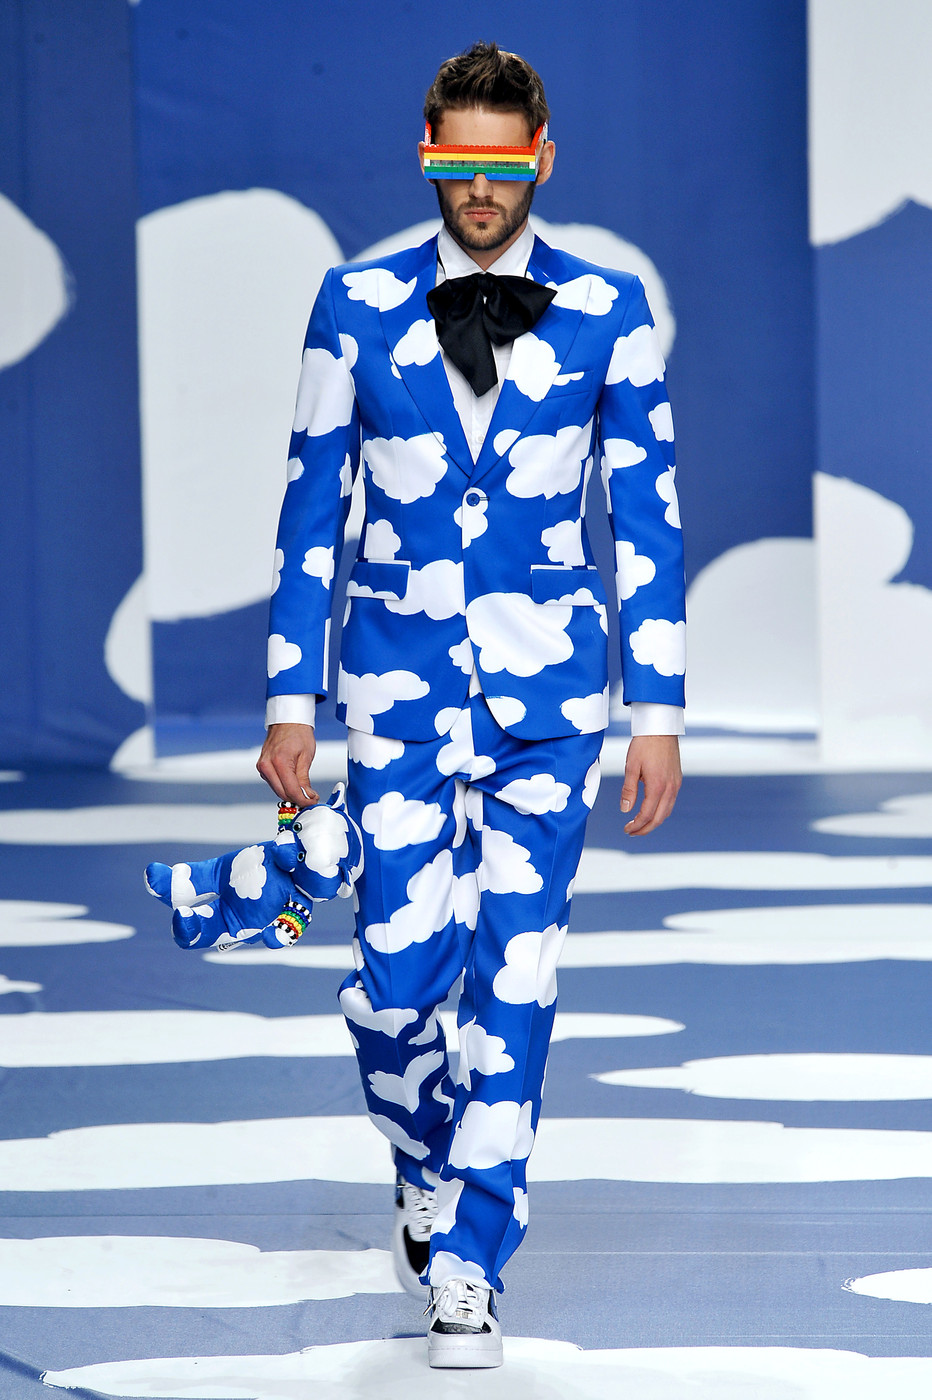 Jean charles de castelbajac at paris fashion week spring 2009 livingly - Jean charles de castelbajac ...